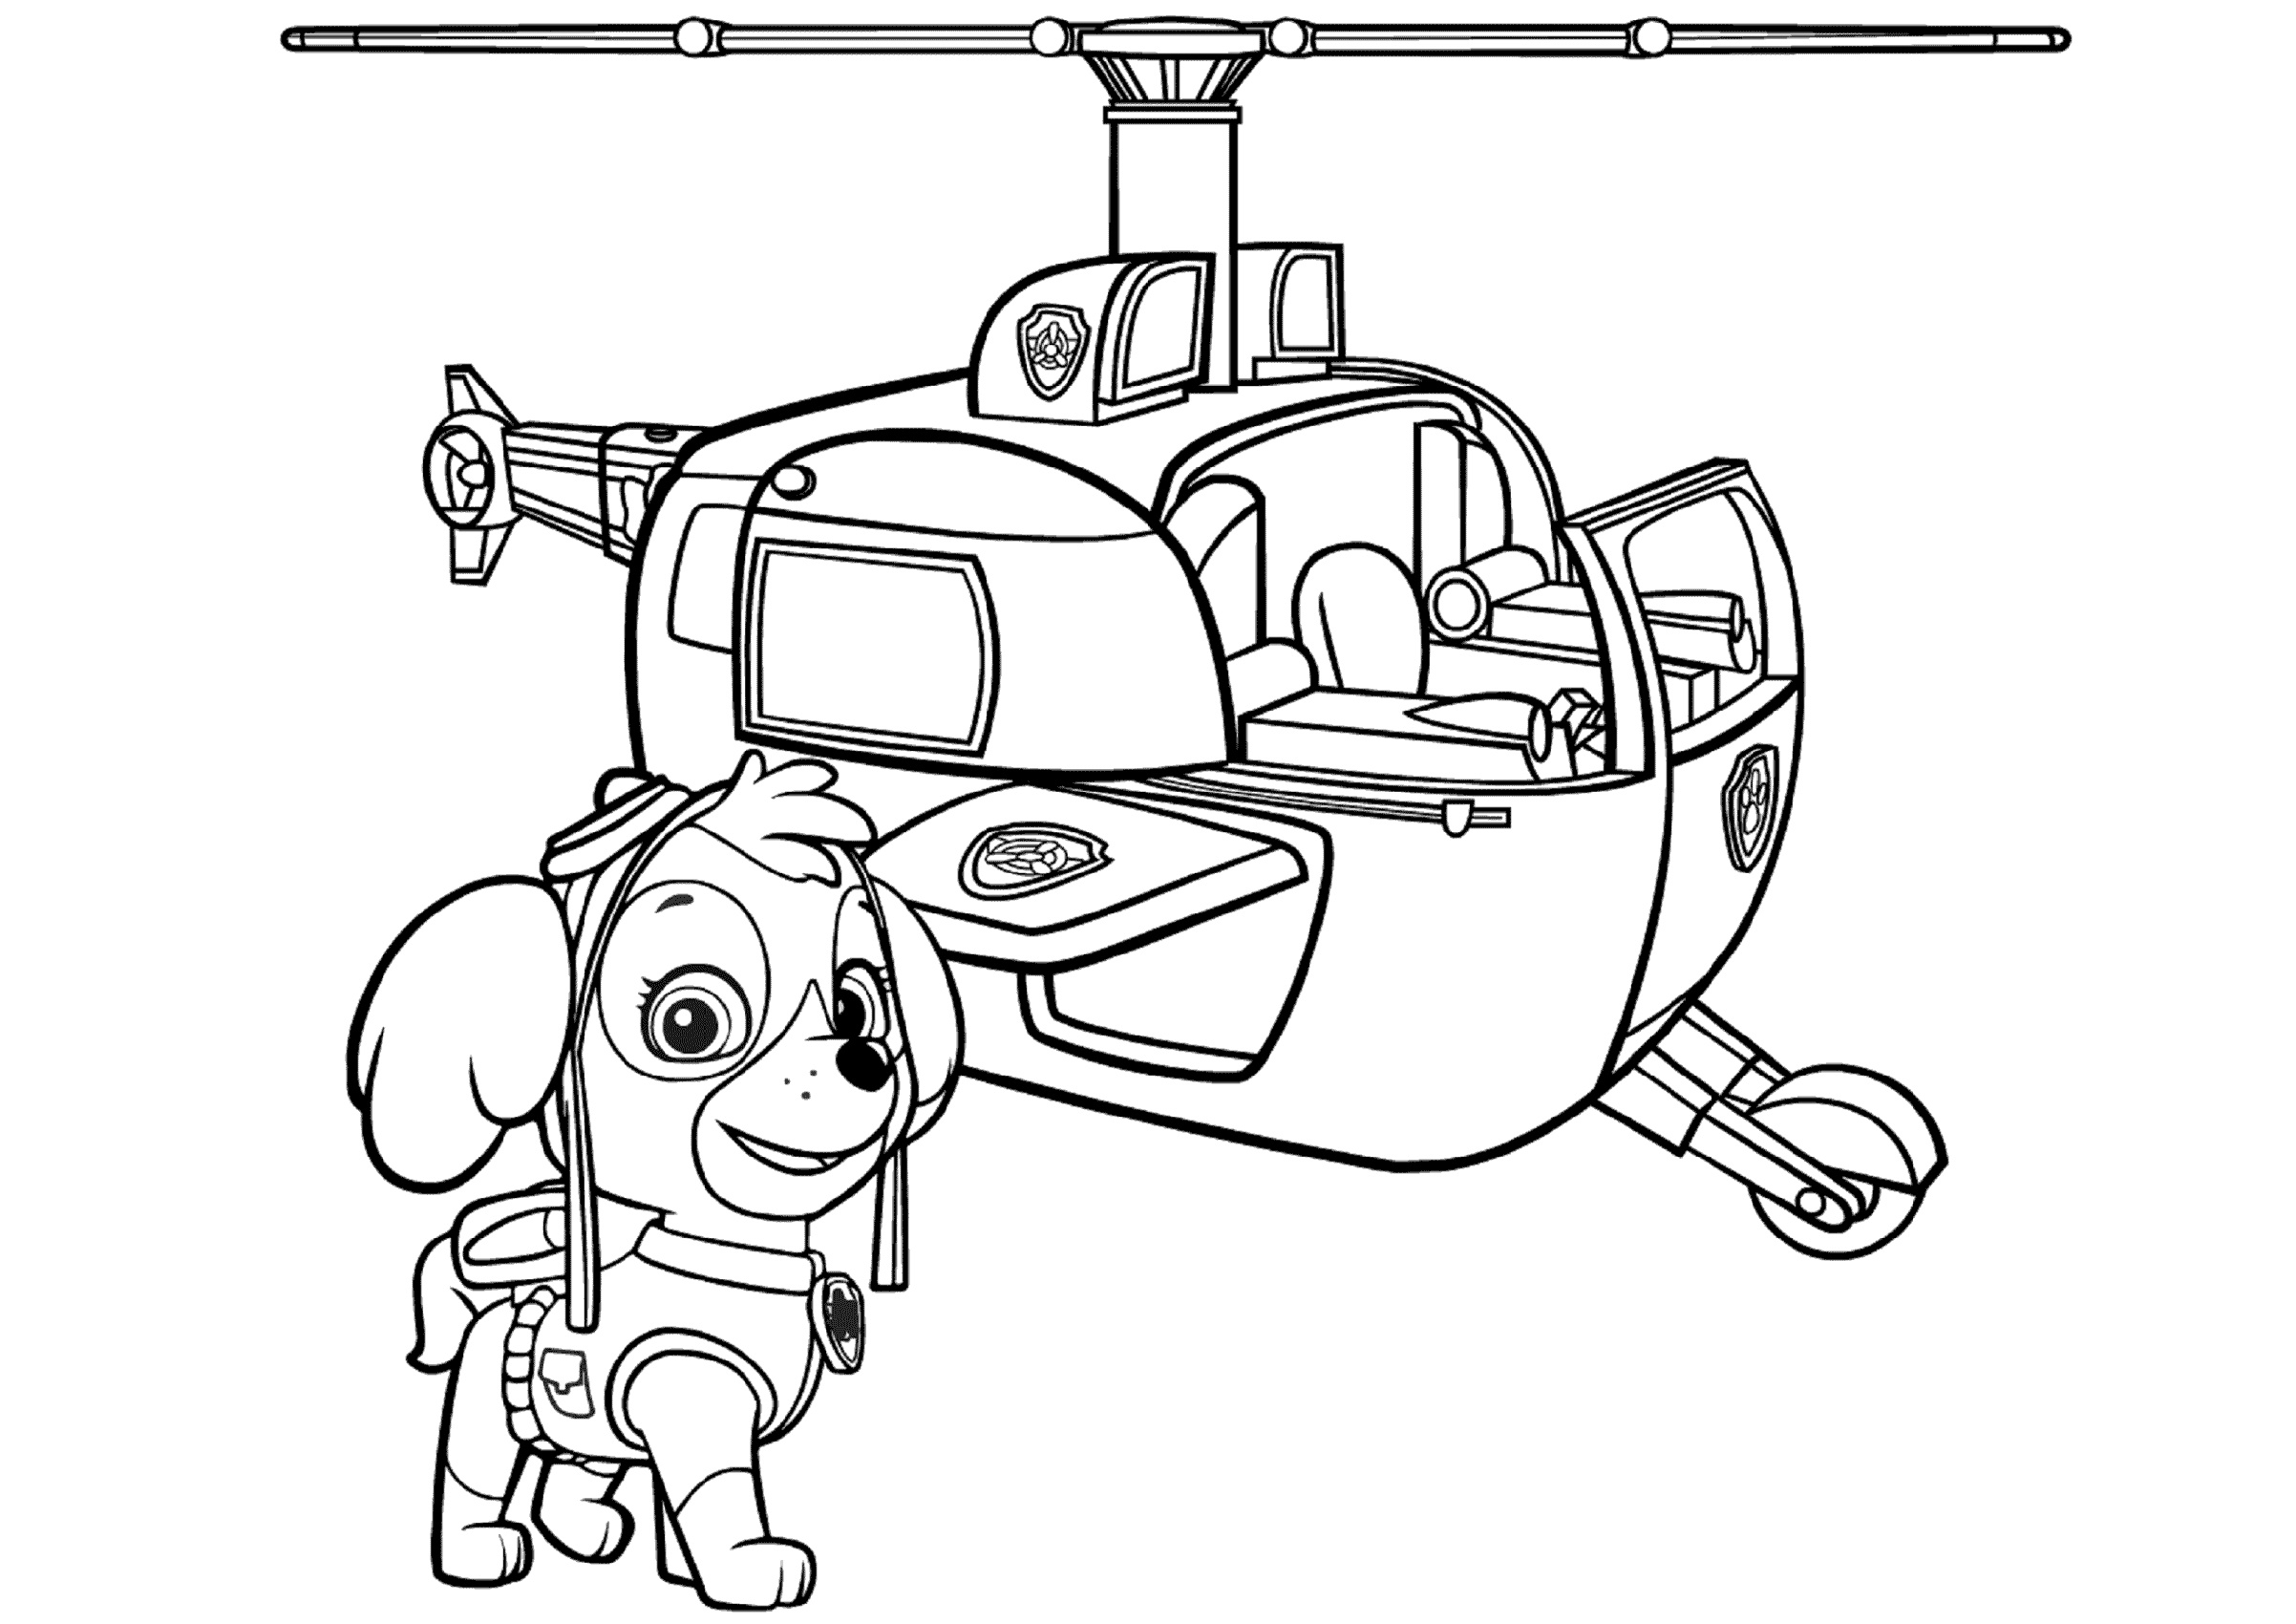 Free Printable Paw Patrol Coloring Pages Skye's Helicopter